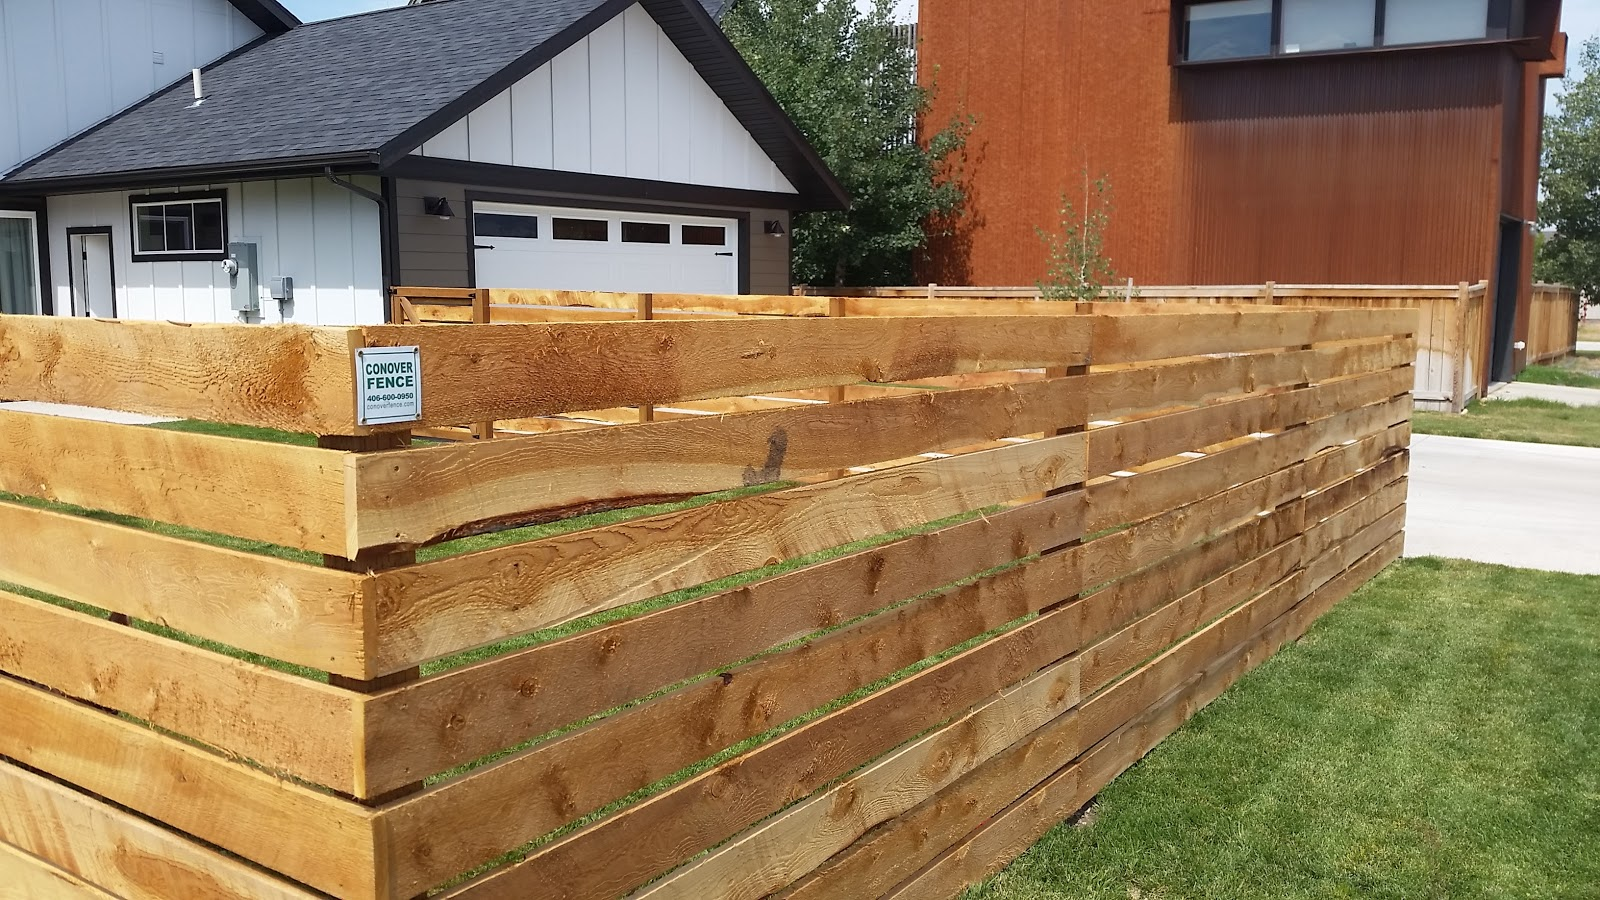 Horizontal fences provide a nice alterative to vertical styles. Cedar or fir is common, and this style remains popular on modern farmhouses across the Valley.